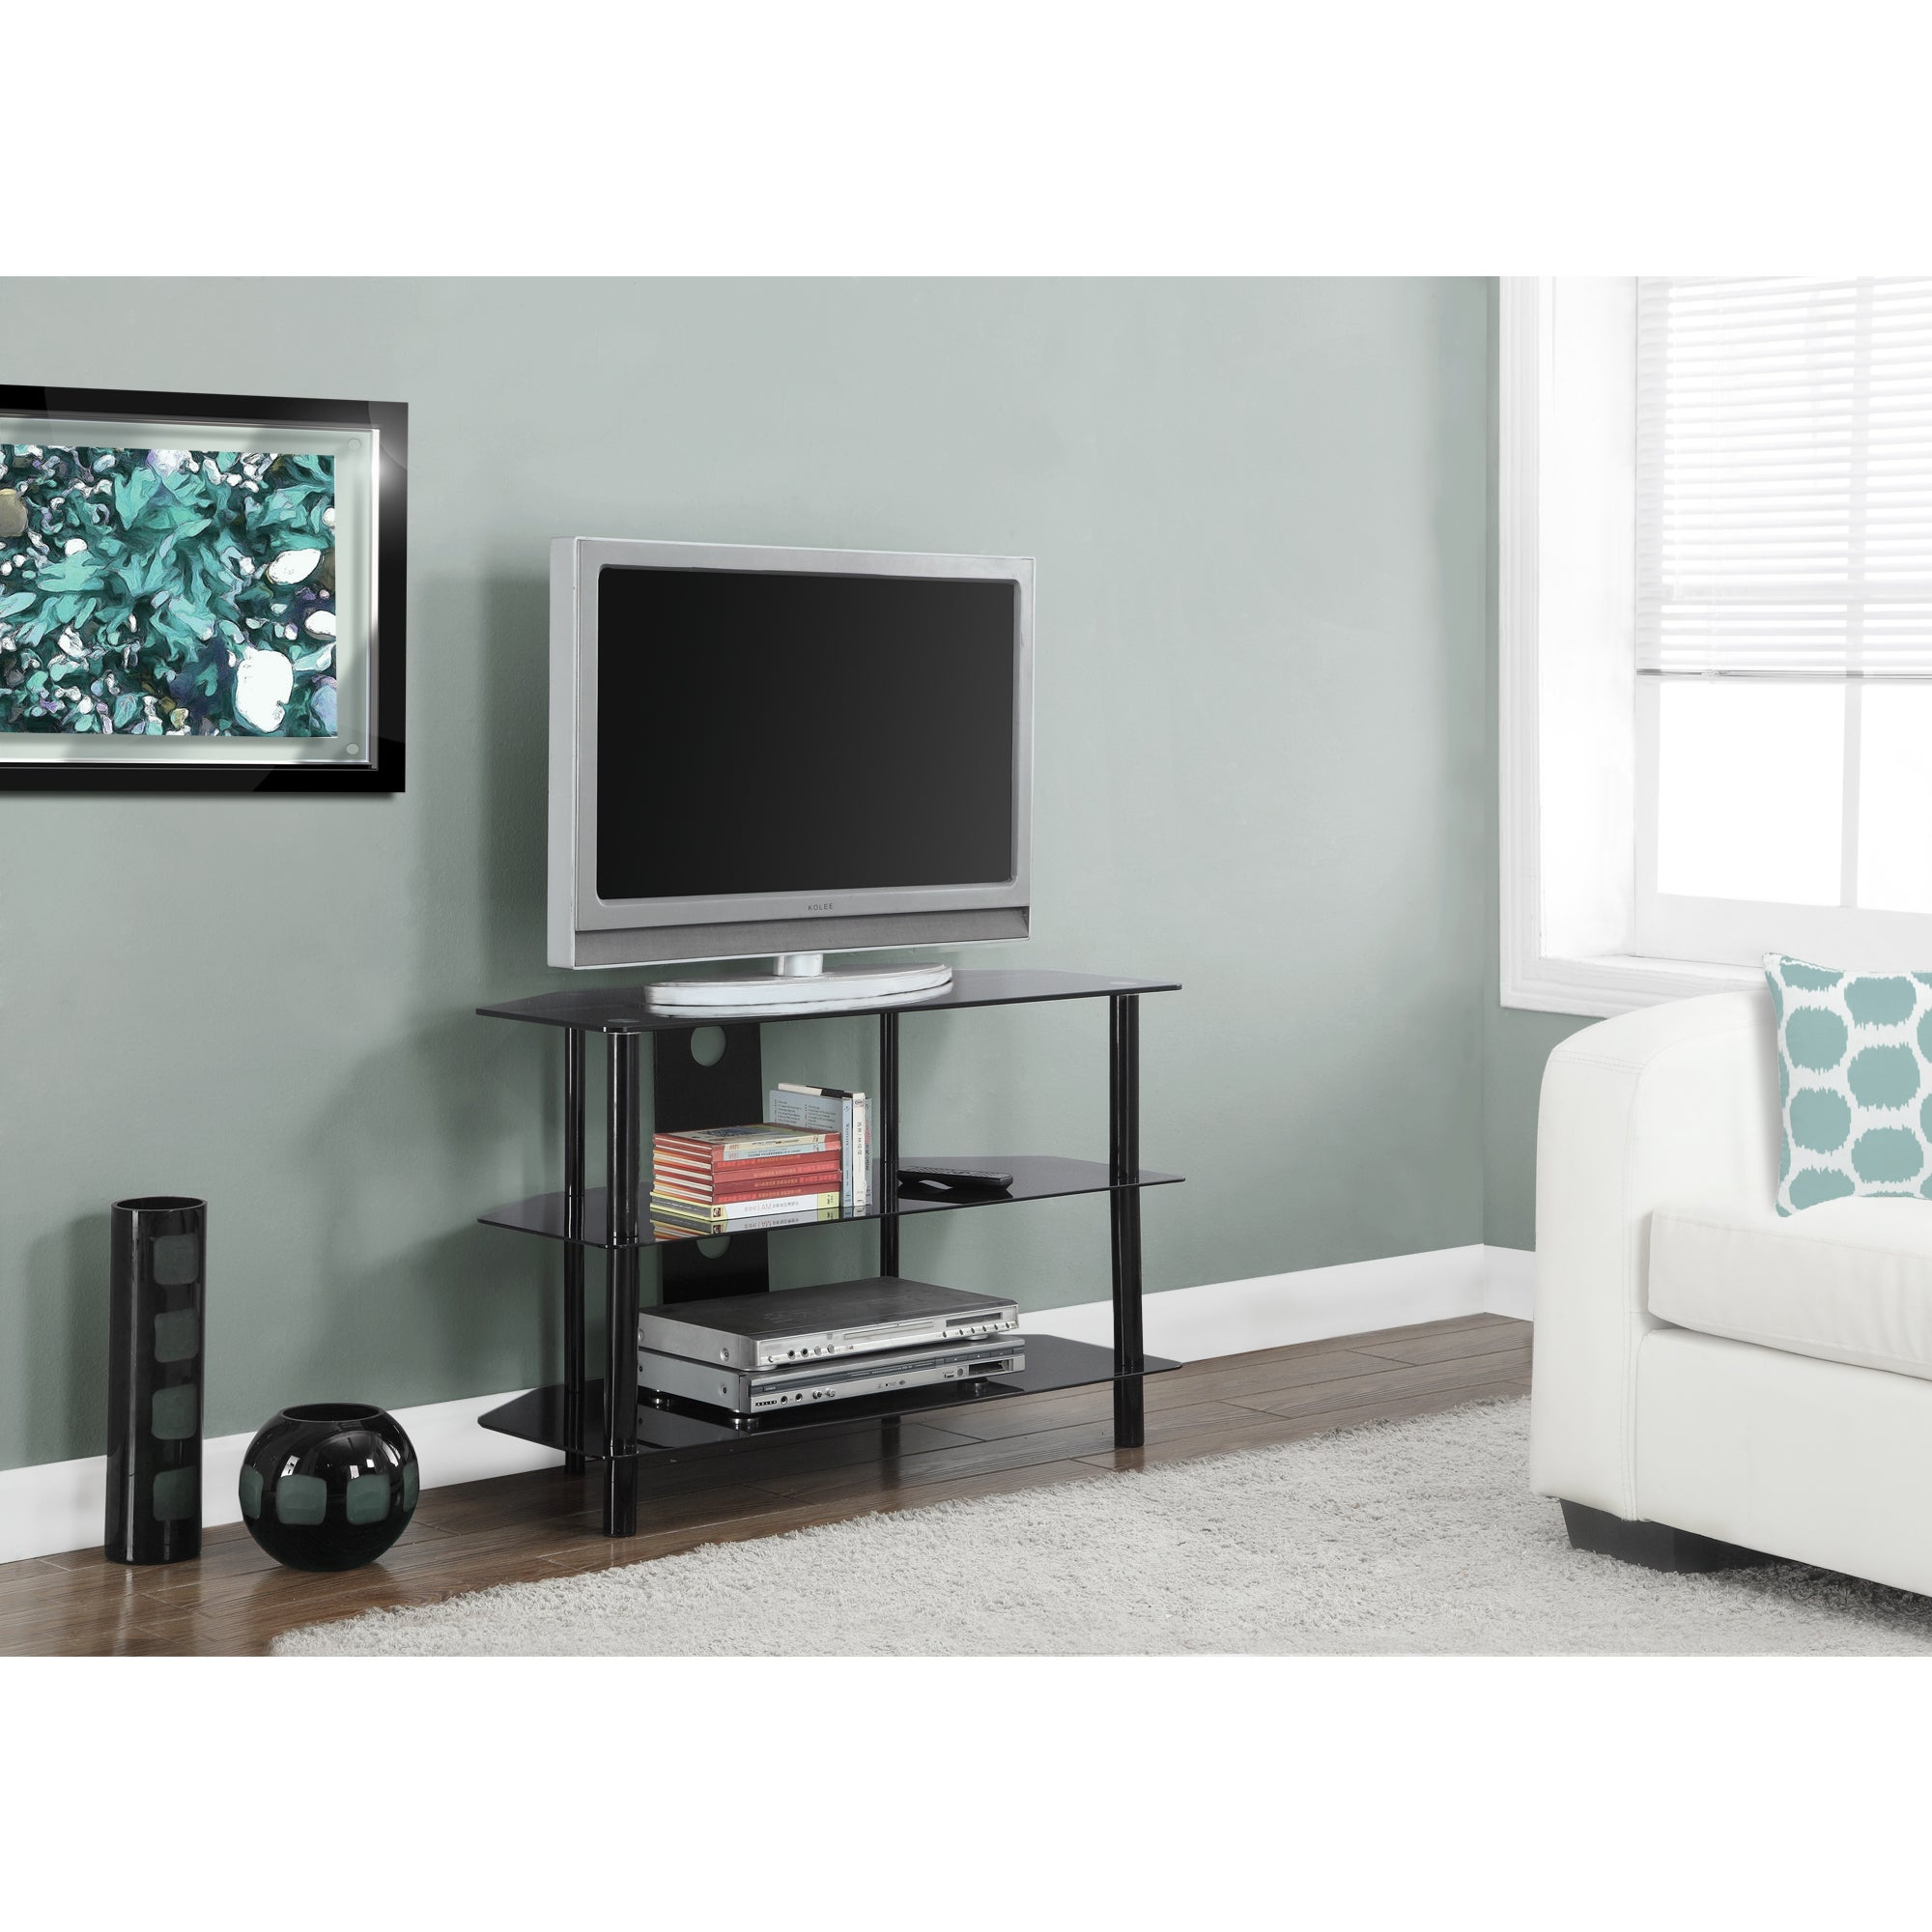 Shop Black Metal 36 Inch Tempered Glass Tv Stand Free Shipping